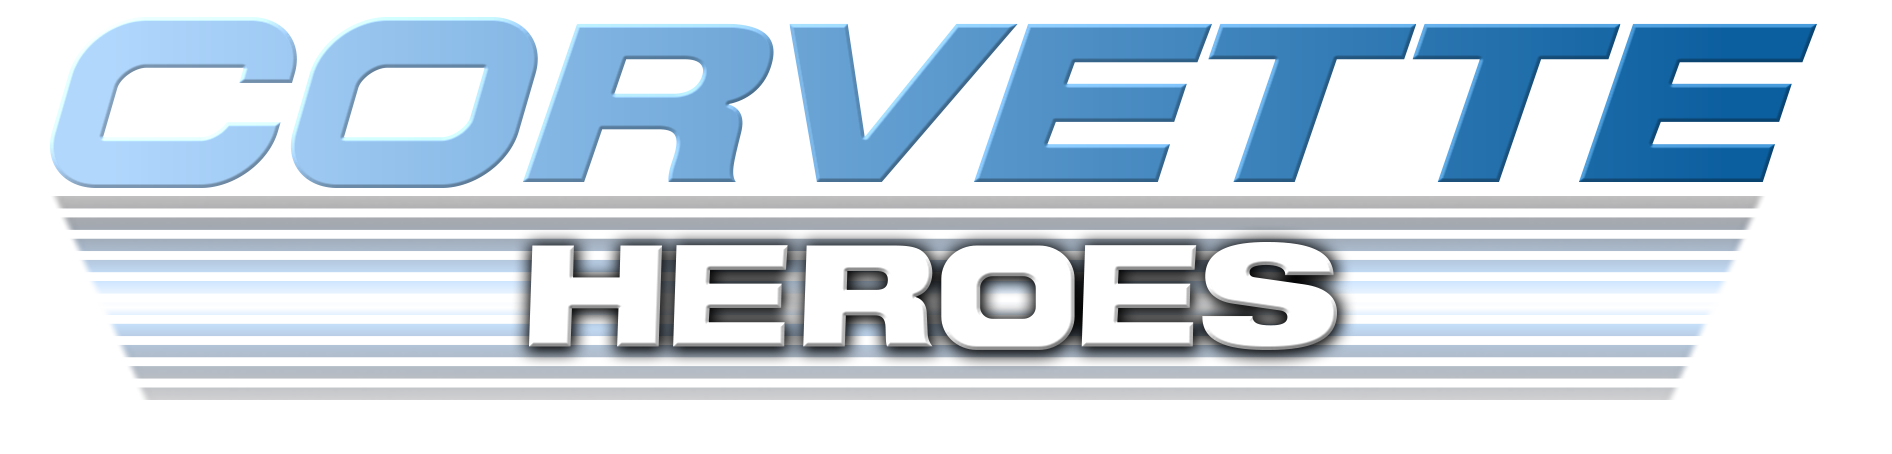 Corvette Heroes Sweepstakes